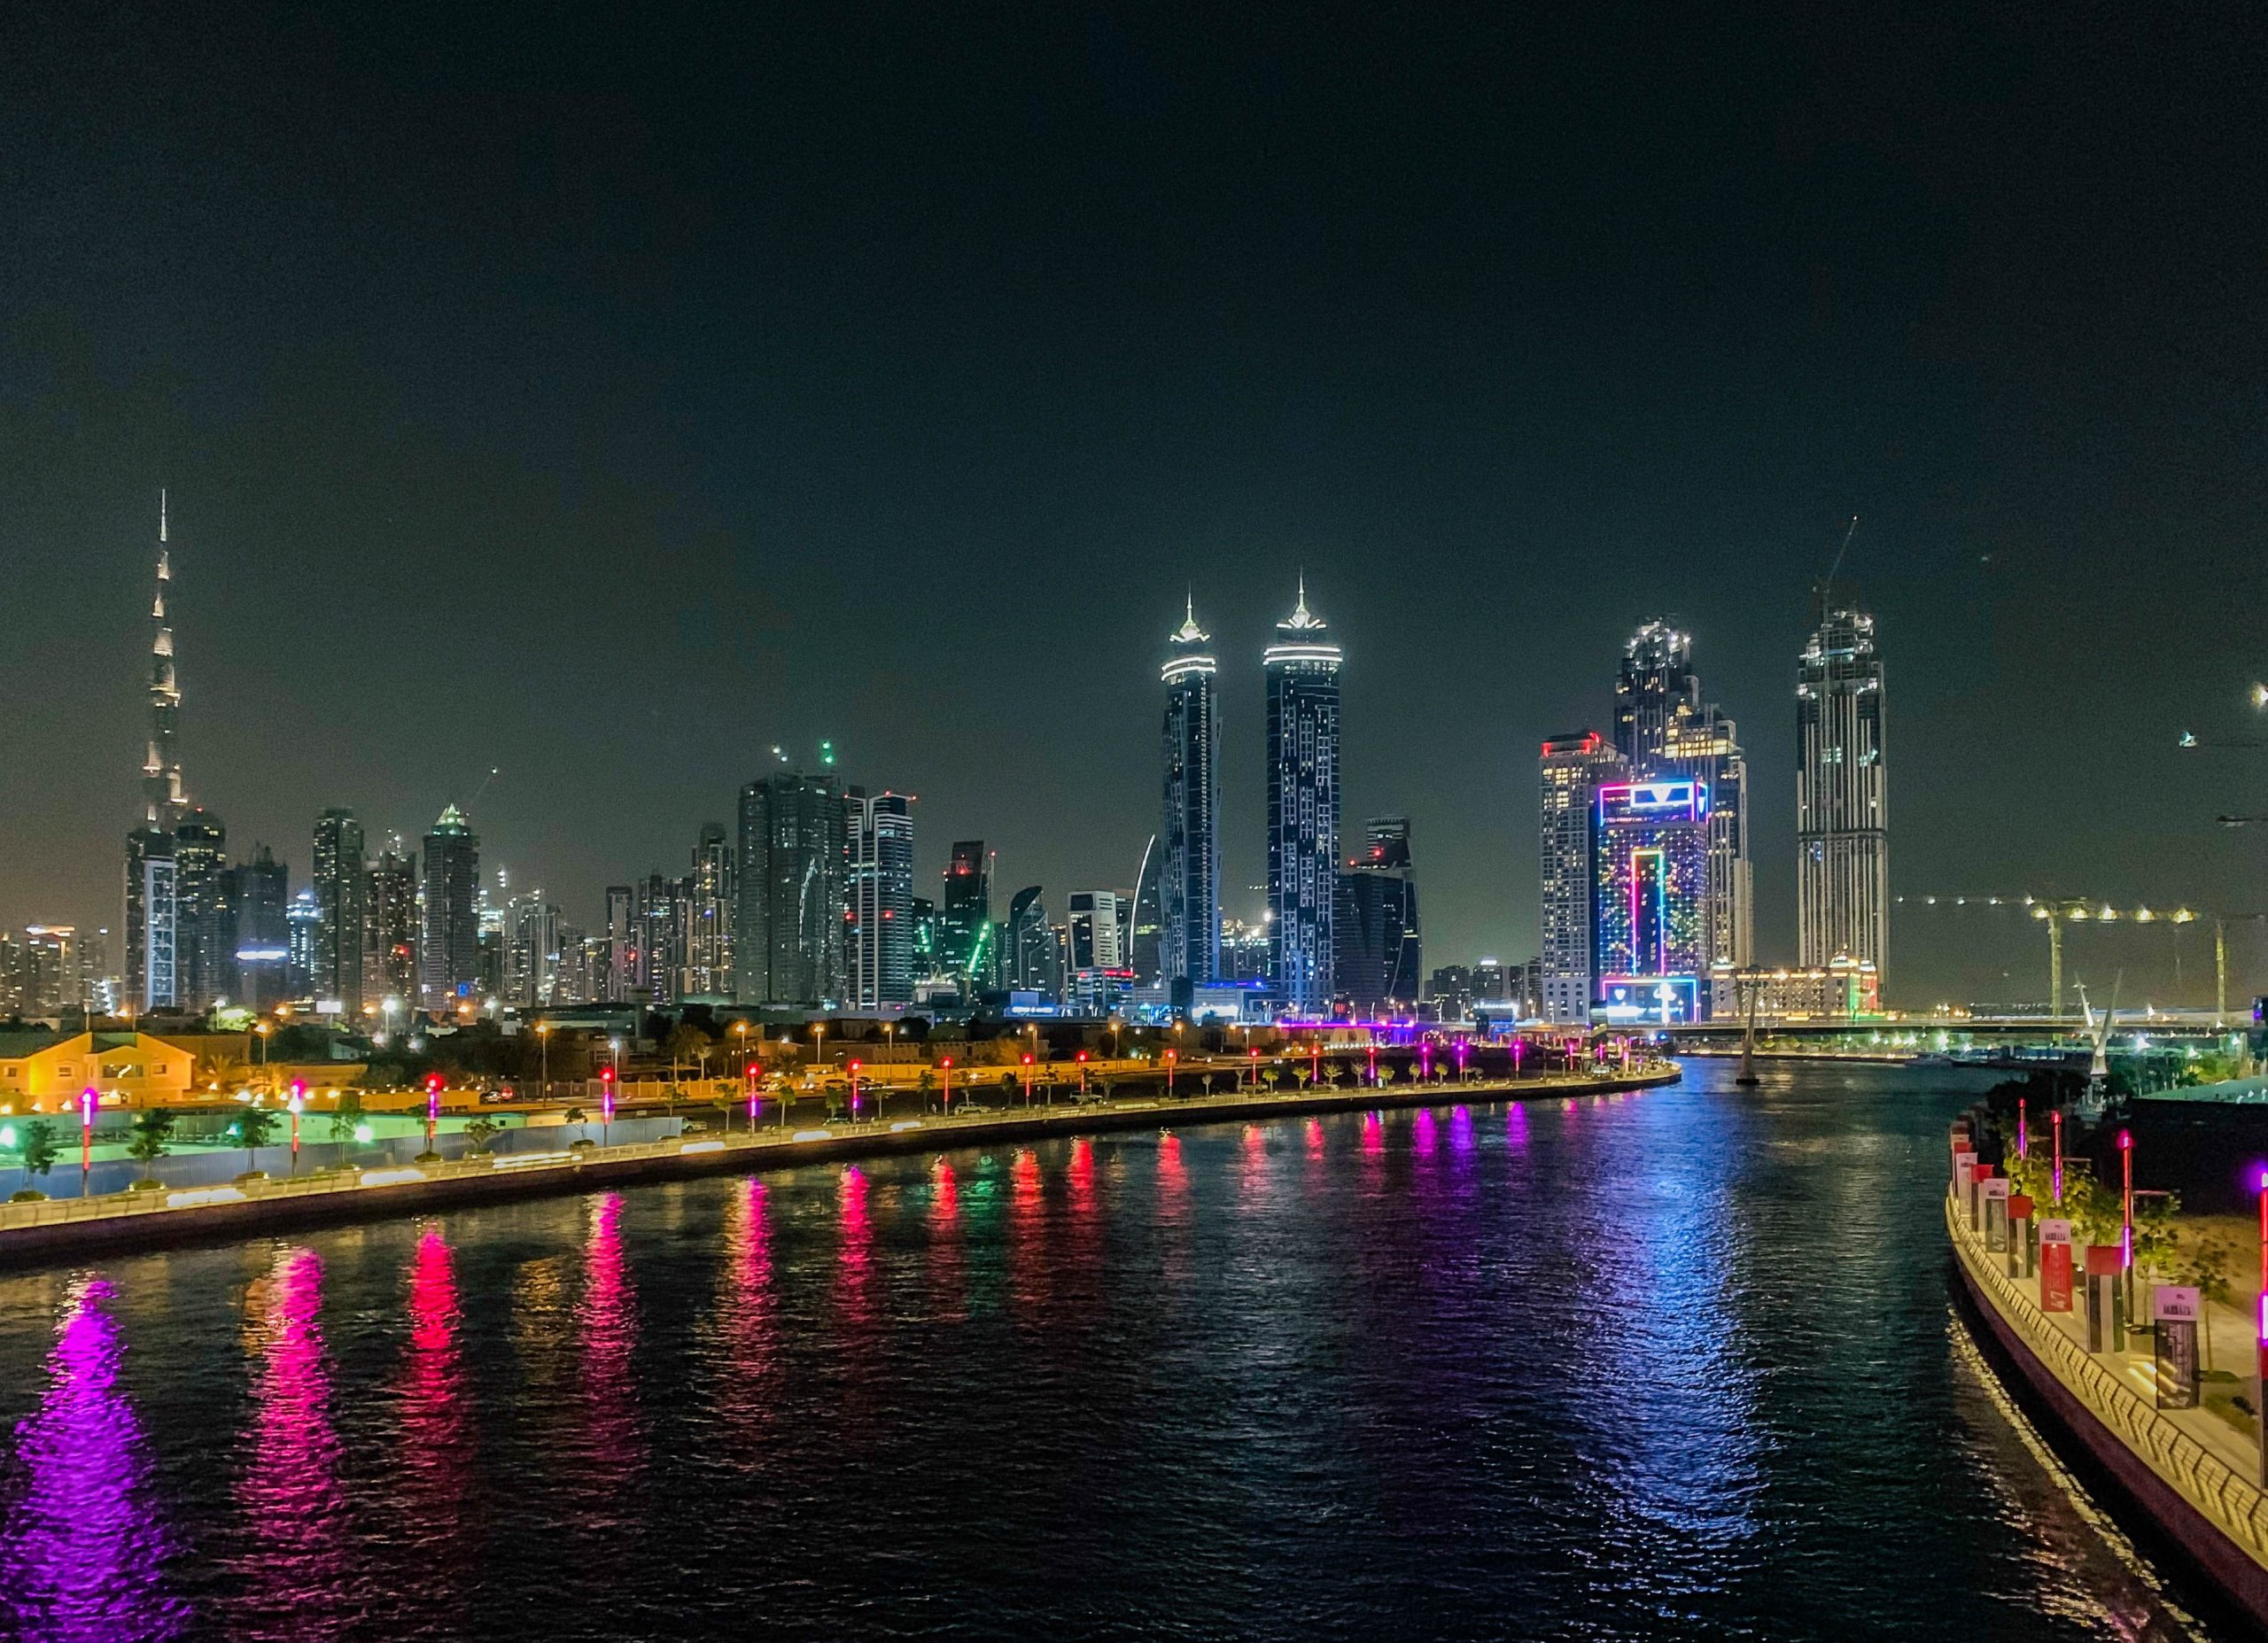 Dubai nightclubs with prostitutes in Swiss lady